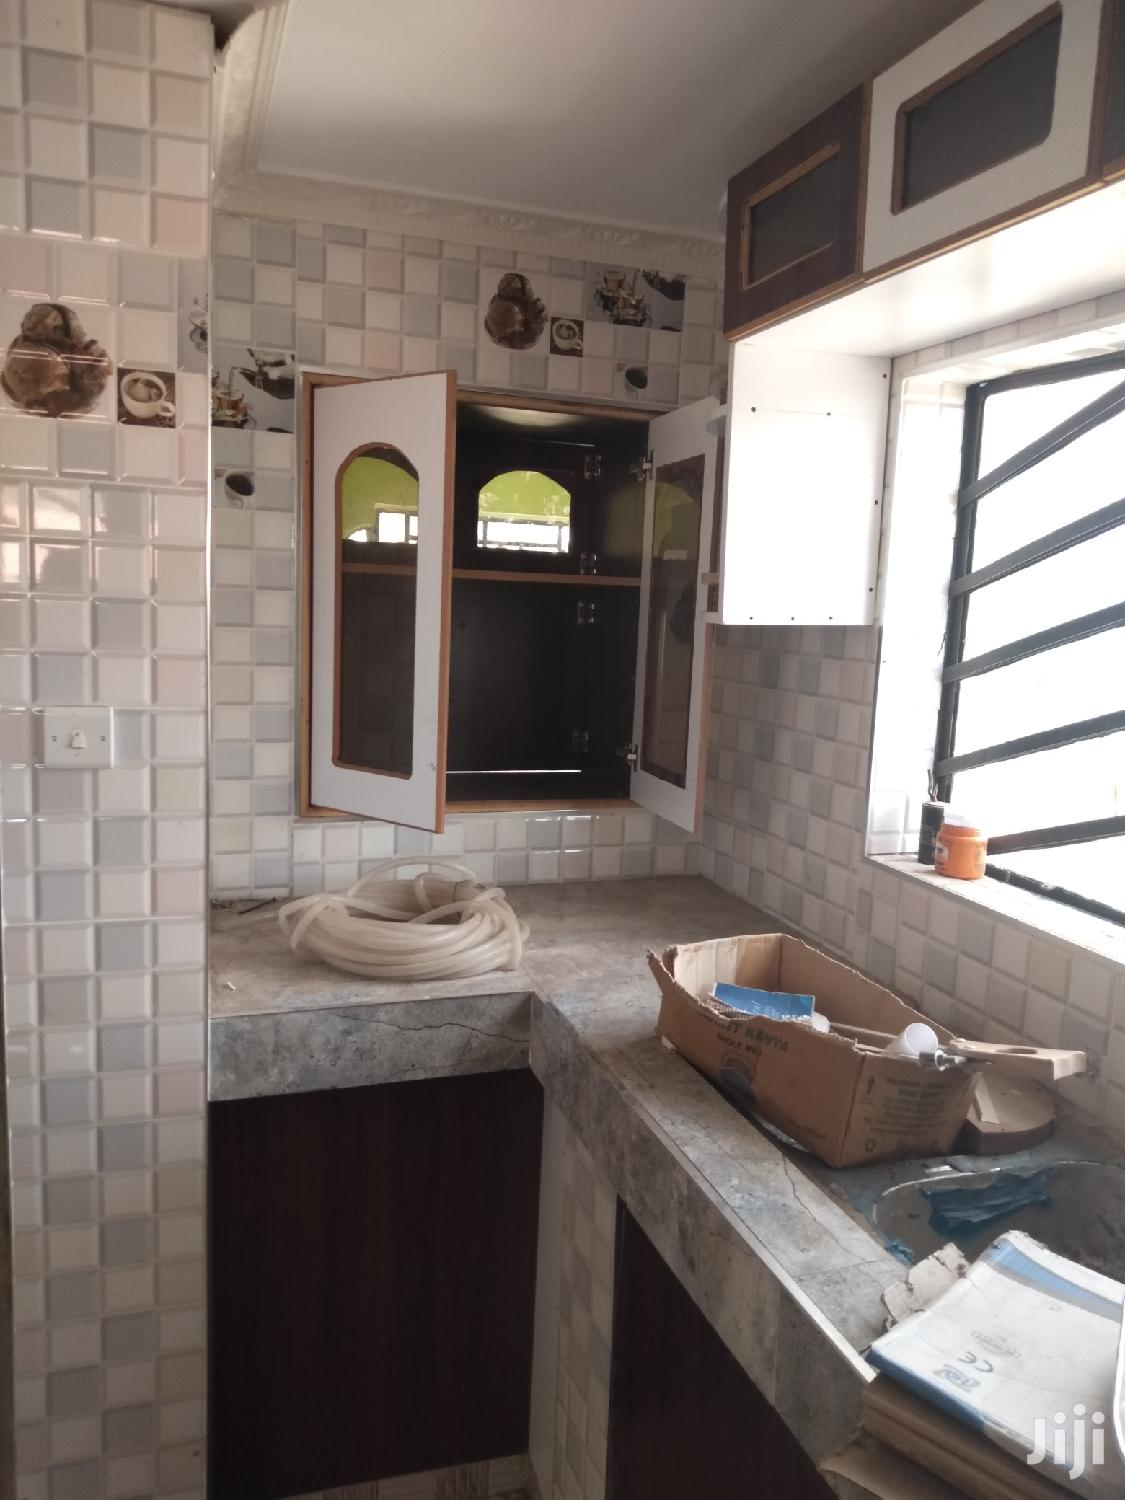 House On Sale | Houses & Apartments For Sale for sale in Kahawa, Nairobi, Kenya